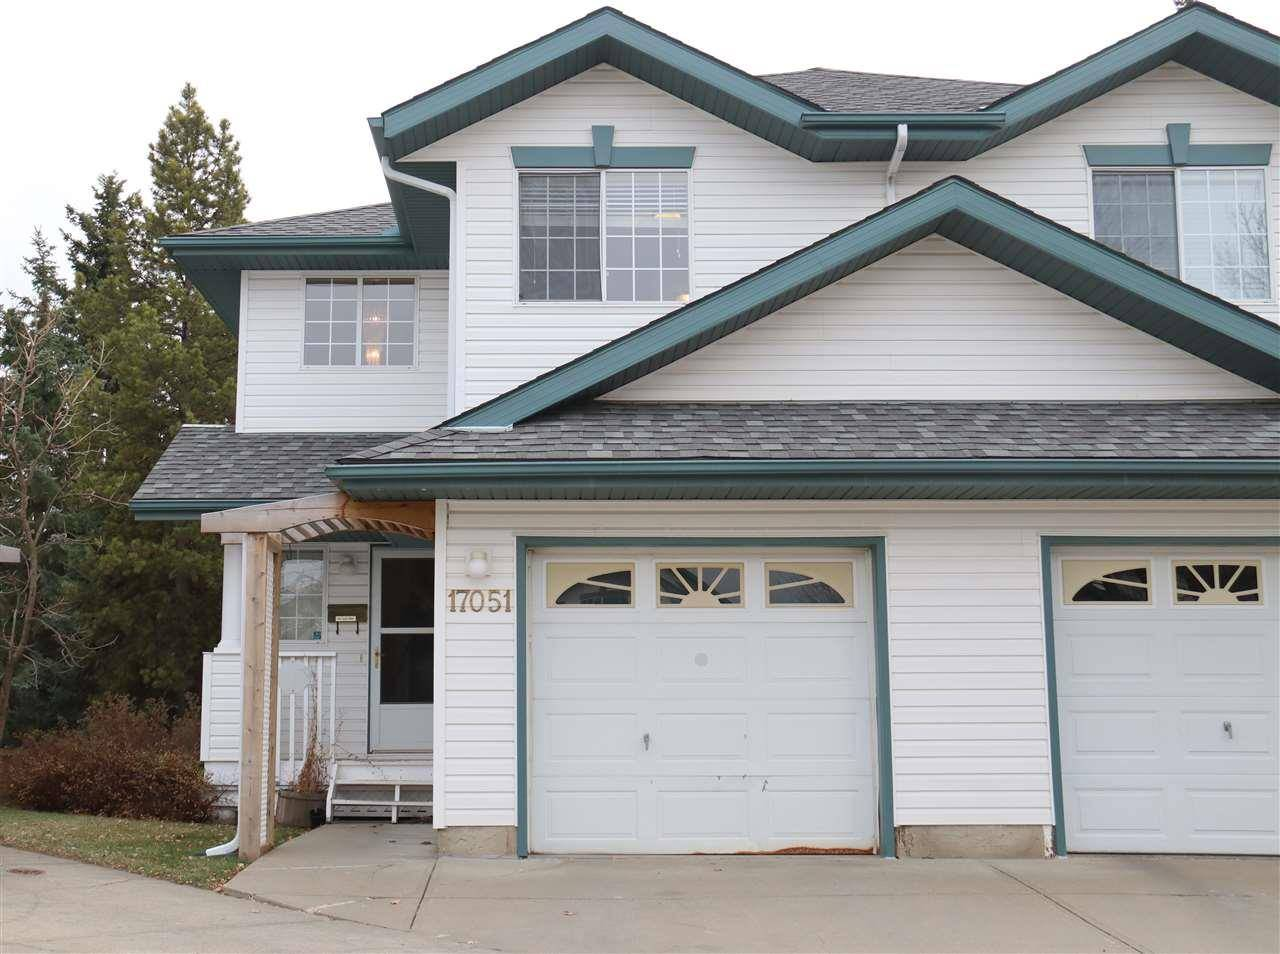 Townhouse for sale at 17051 113 St Nw Edmonton Alberta - MLS: E4174835